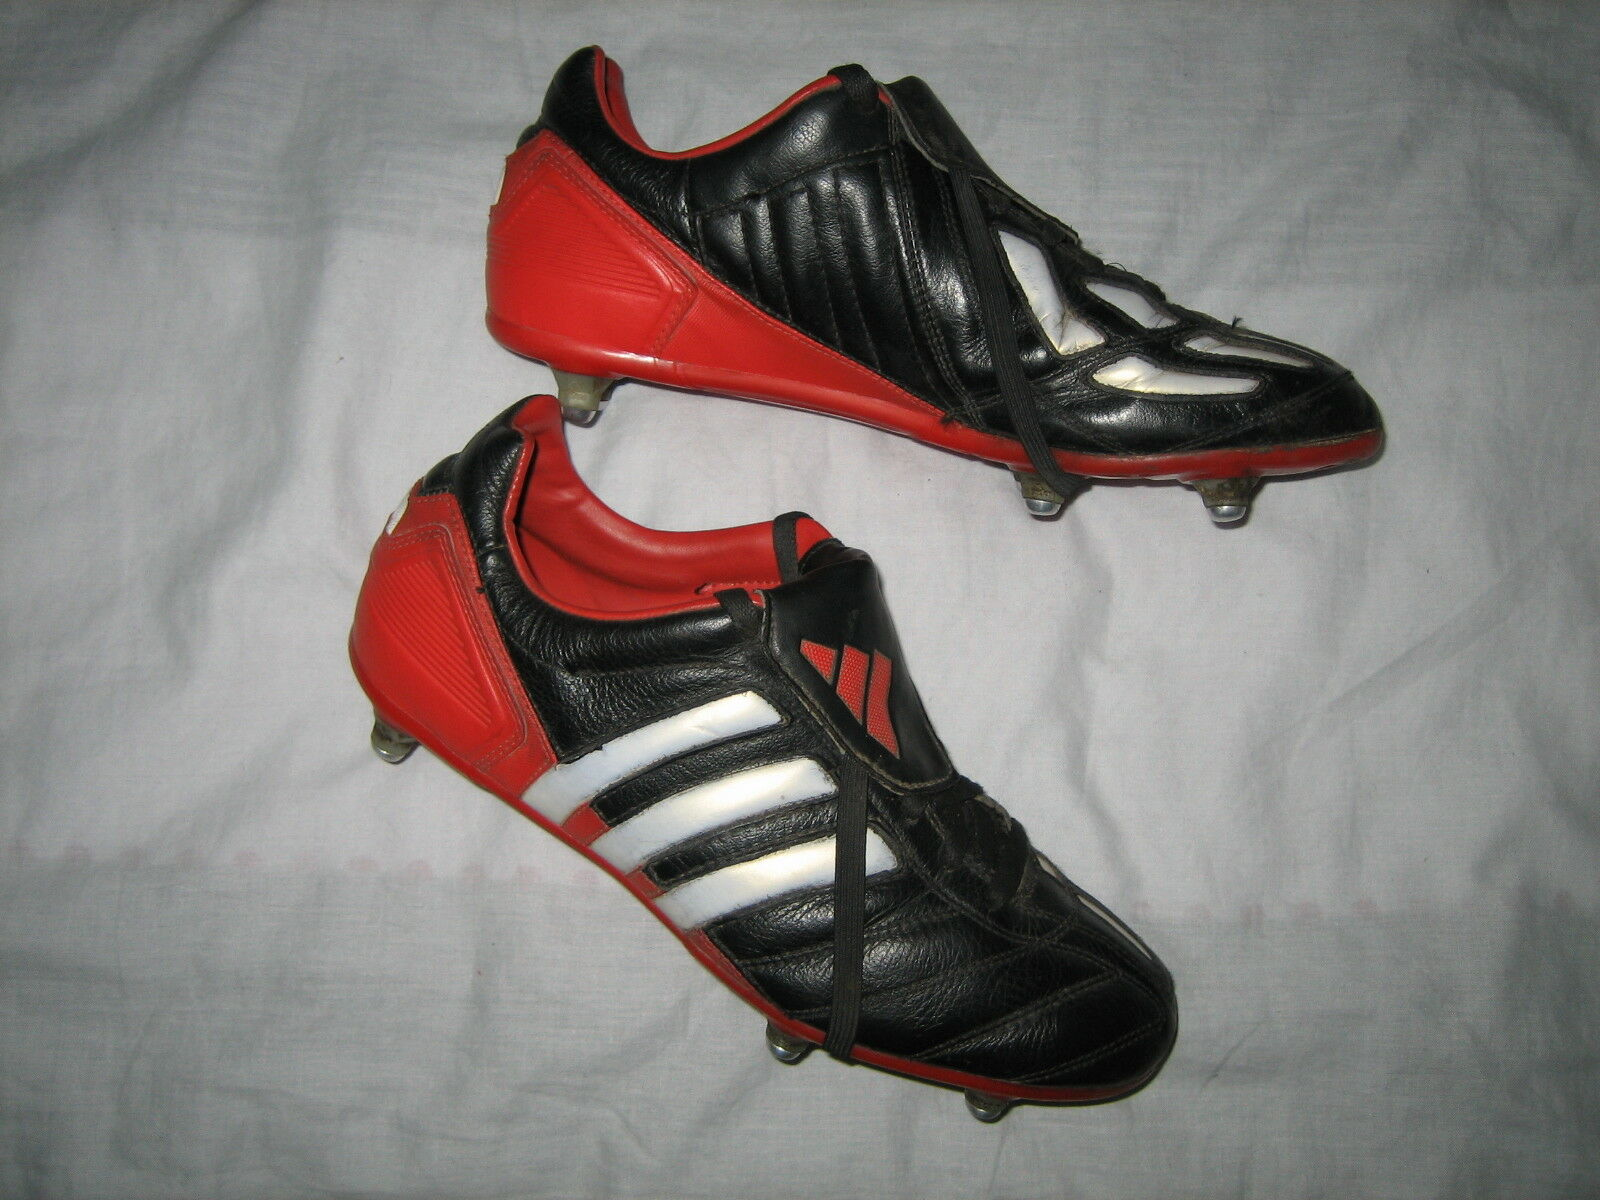 Adidas MANIA sg year 2003 very rare VINTAGE not pro model football boots